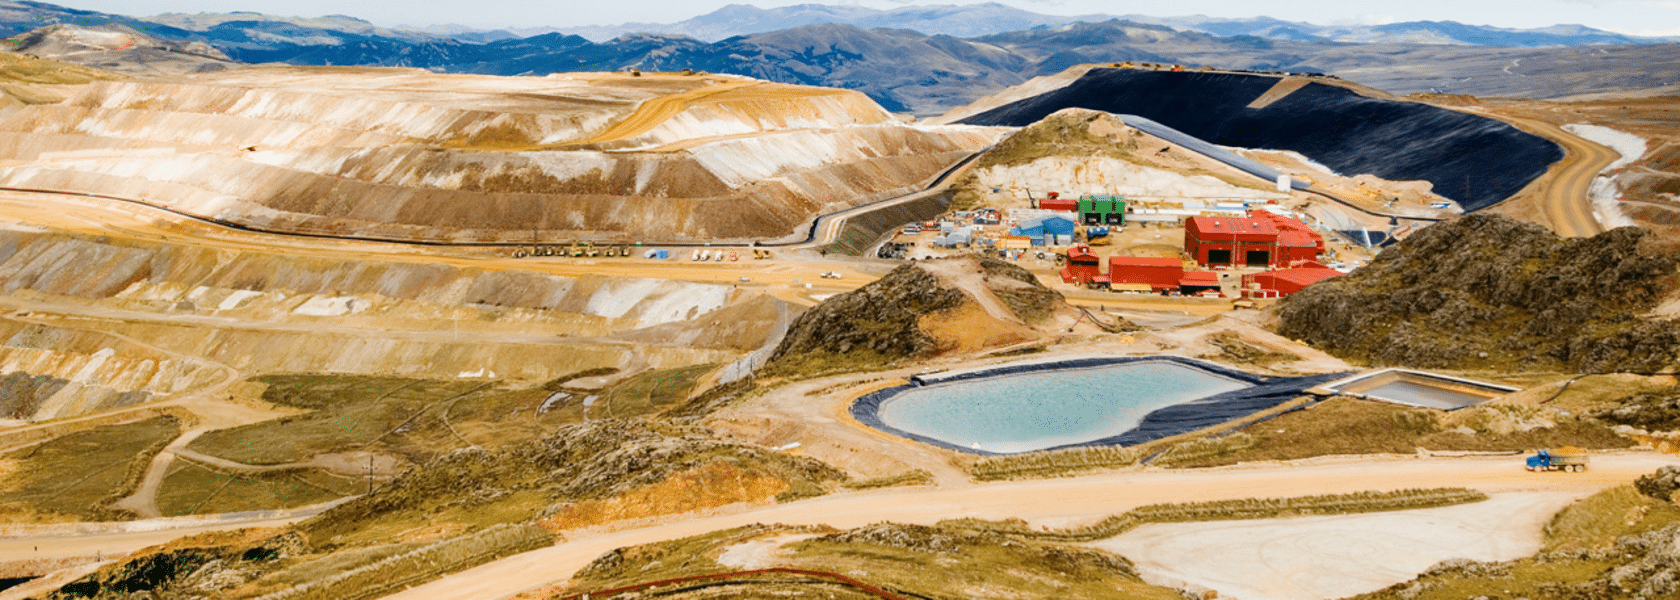 Newmont utilises drone and InSAR tech to monitor tailings dams